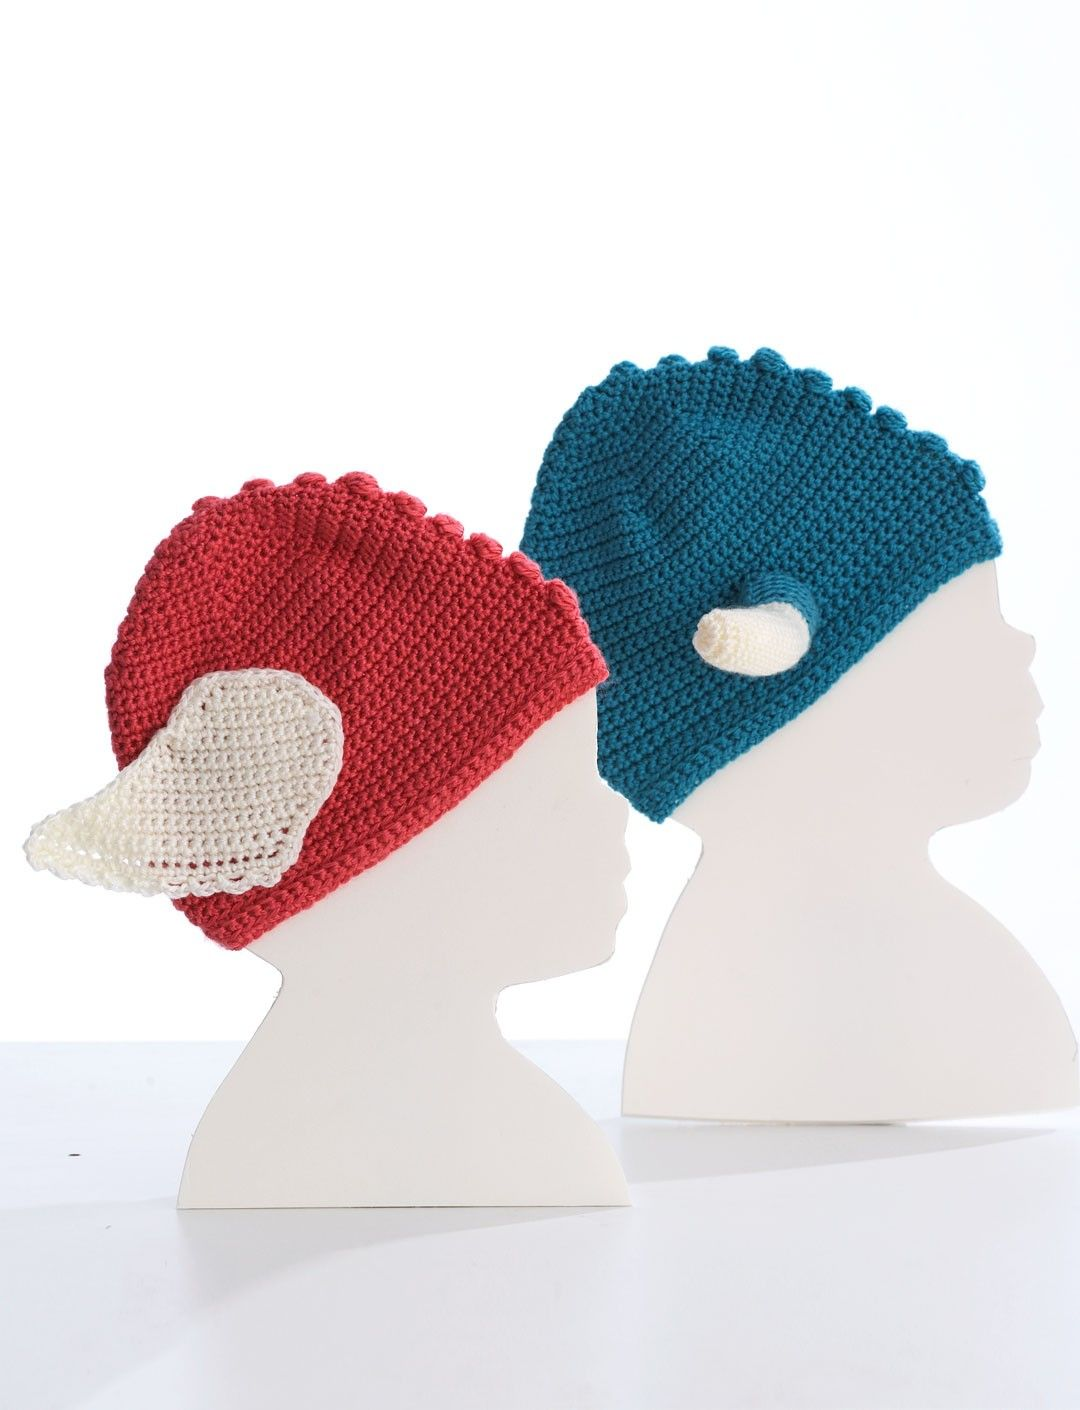 Yarnspirations.com+-+Bernat+Warrior+Baby+Helmets+-+Patterns++|+ ...